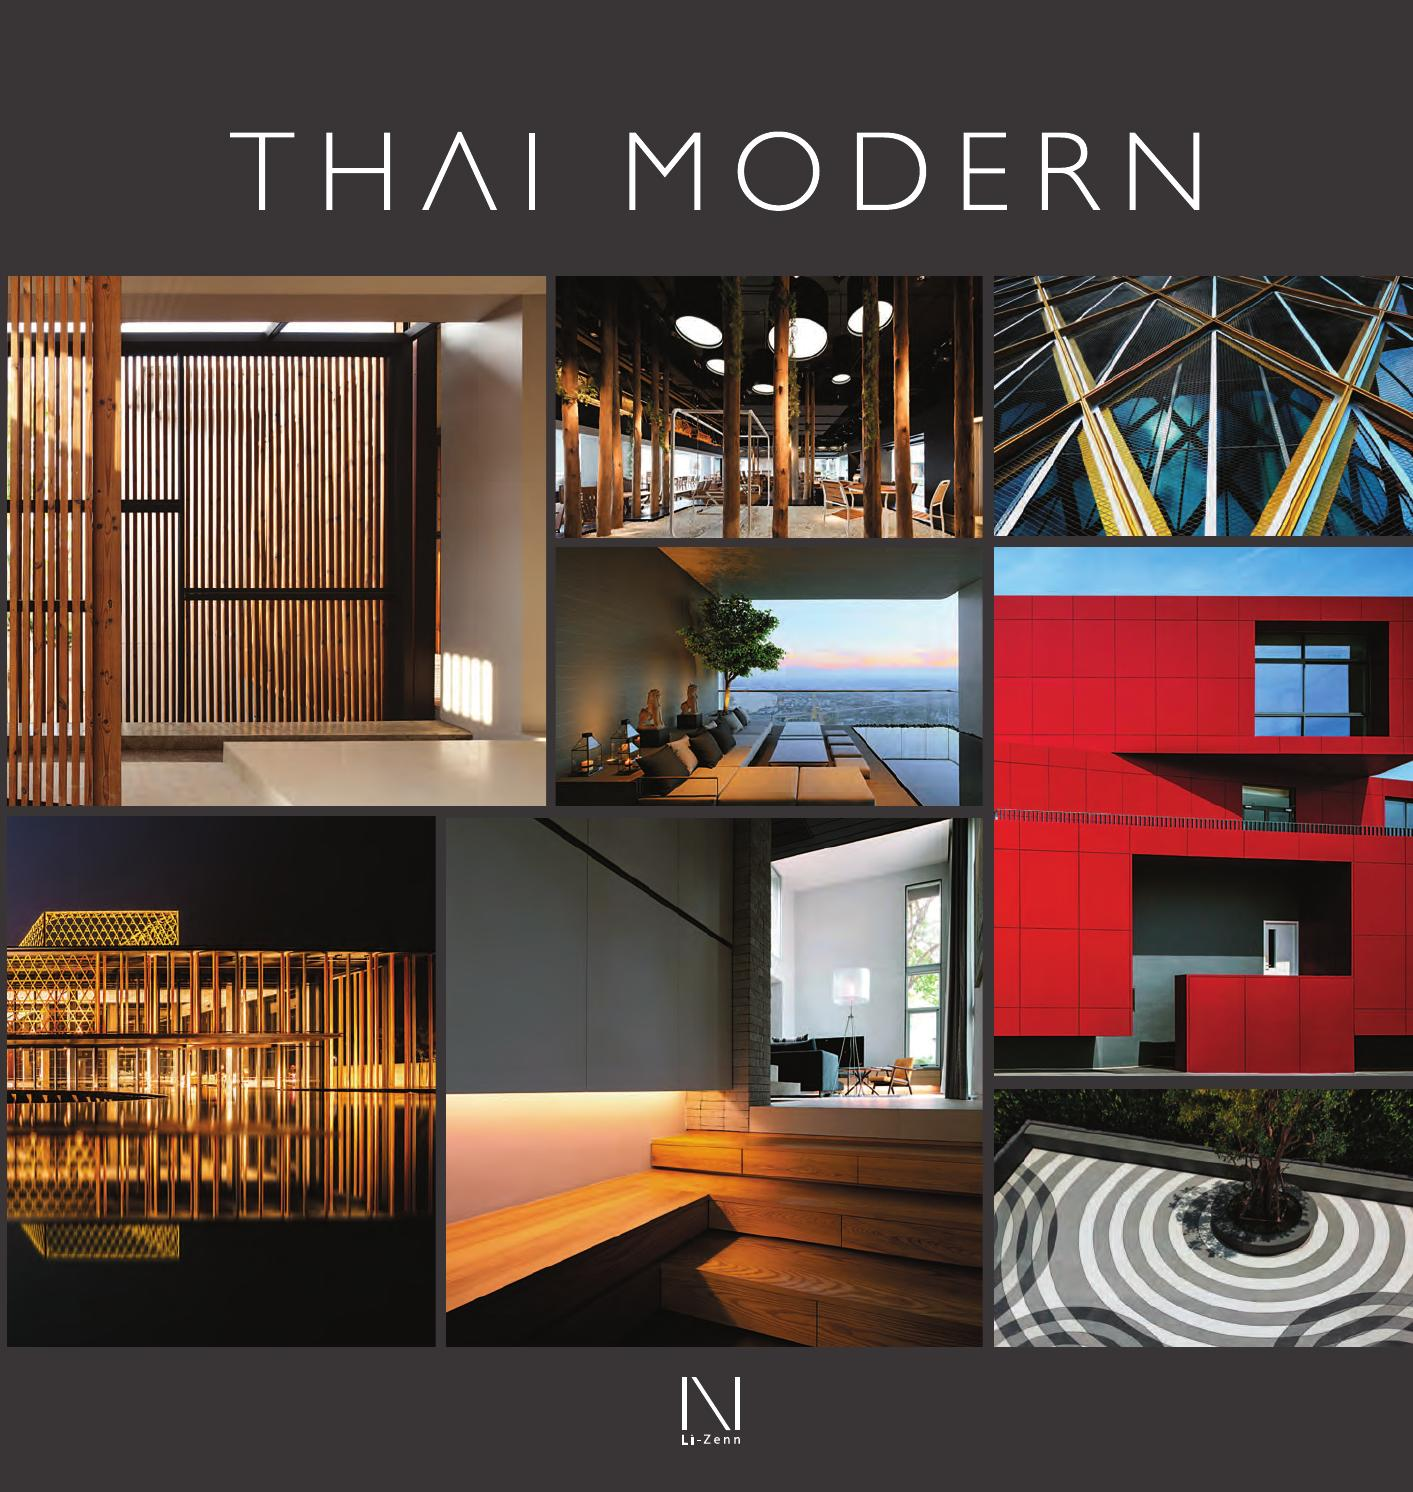 Thai modern by li zenn issuu for Thai modern house style